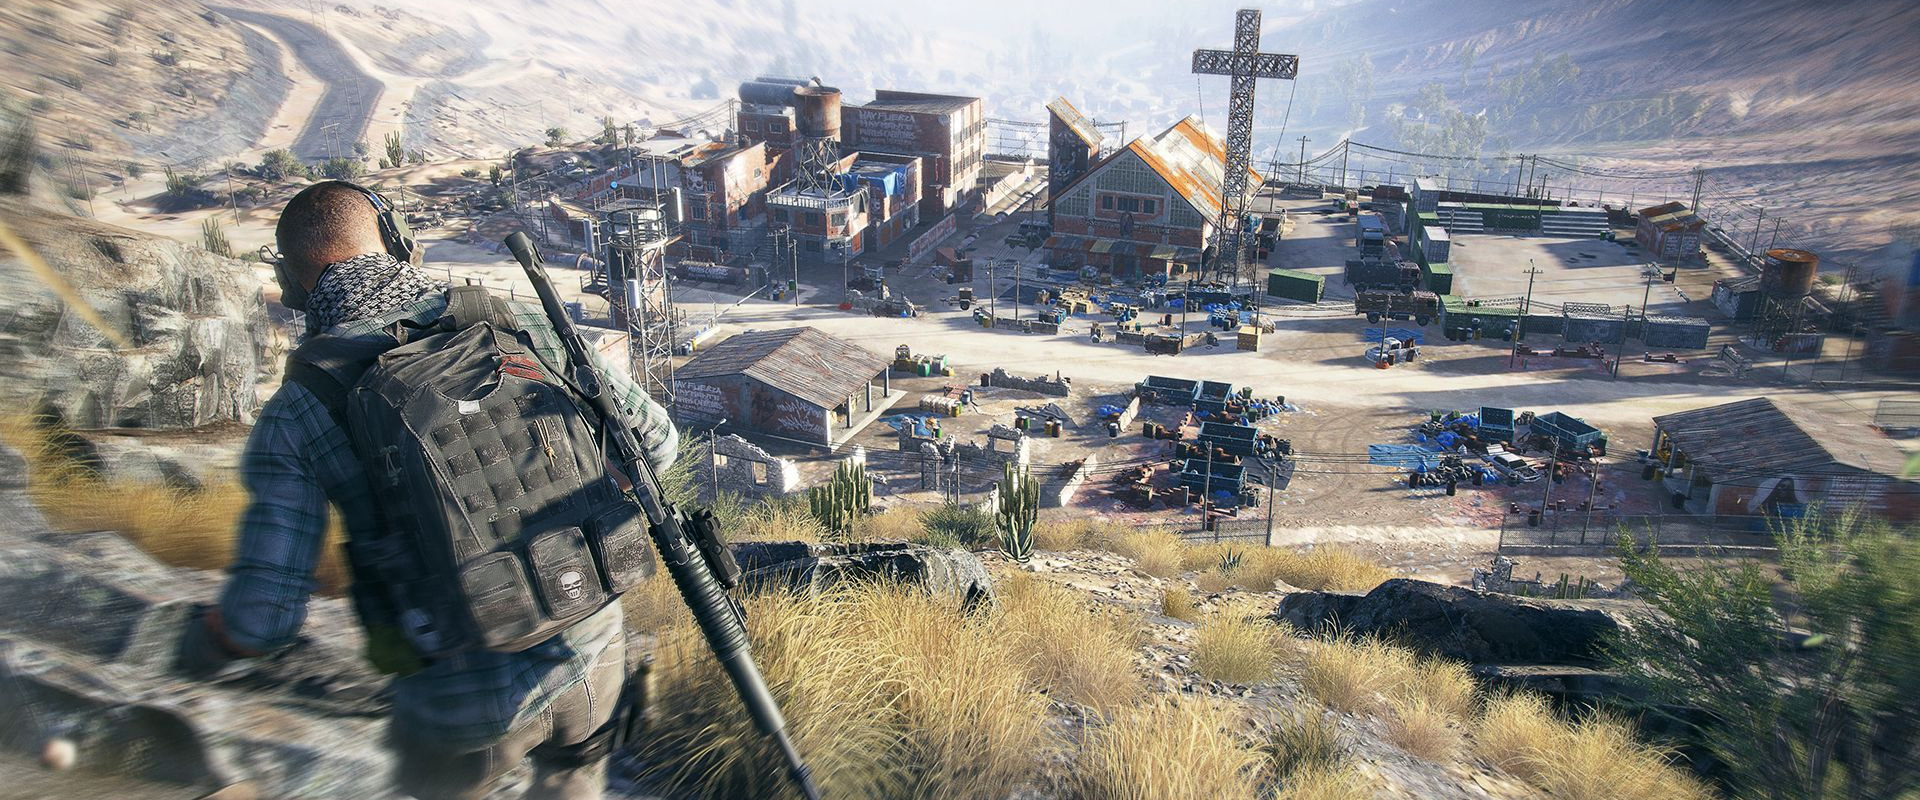 imagenes-ghost-recon-wildlands-02